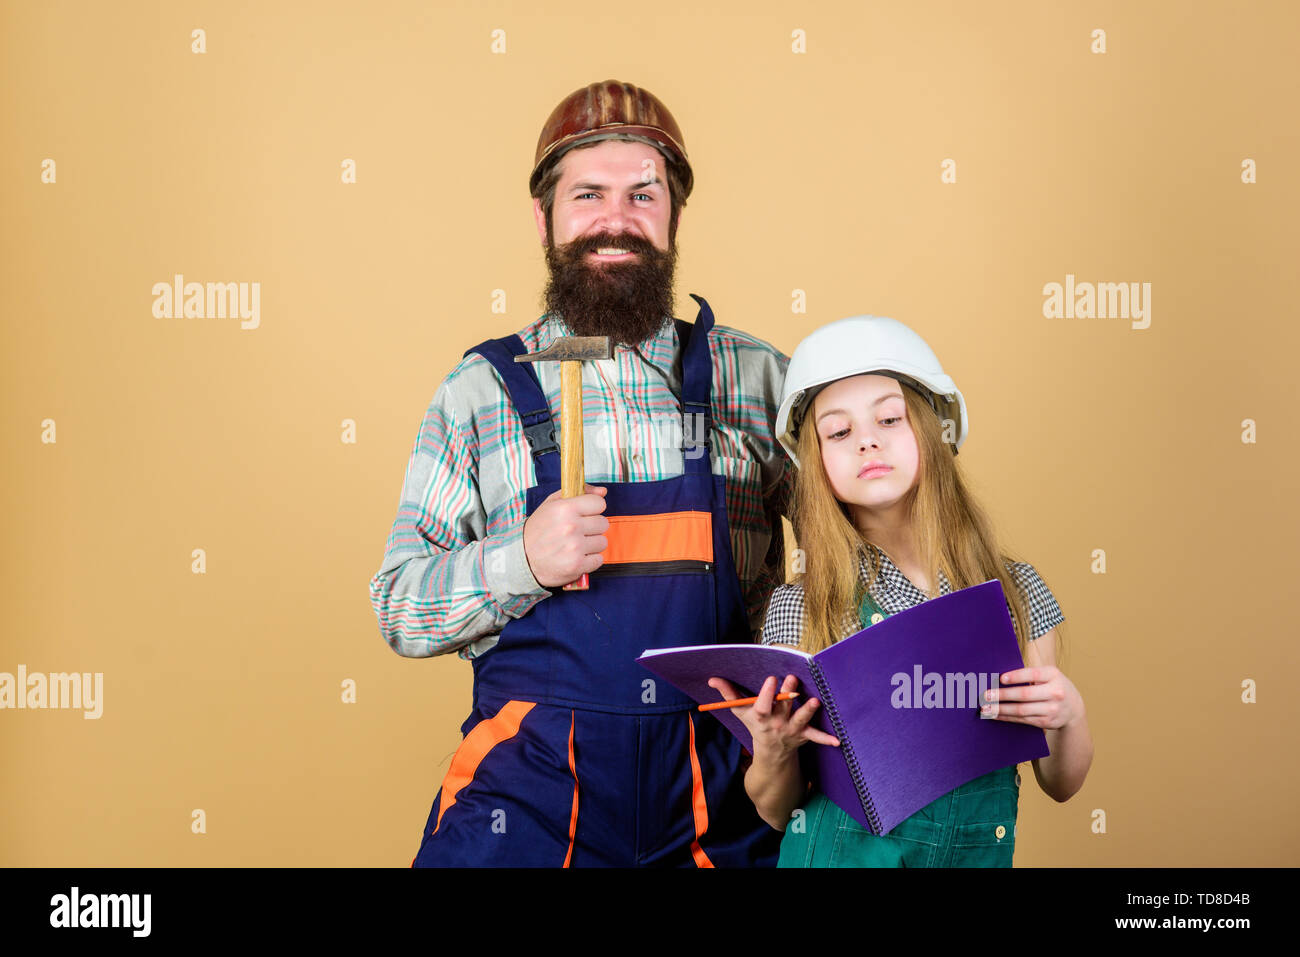 Father bearded man and daughter hard hat helmet uniform renovating home. Home improvement activity. Kid girl planning renovation. Child renovation roo - Stock Image